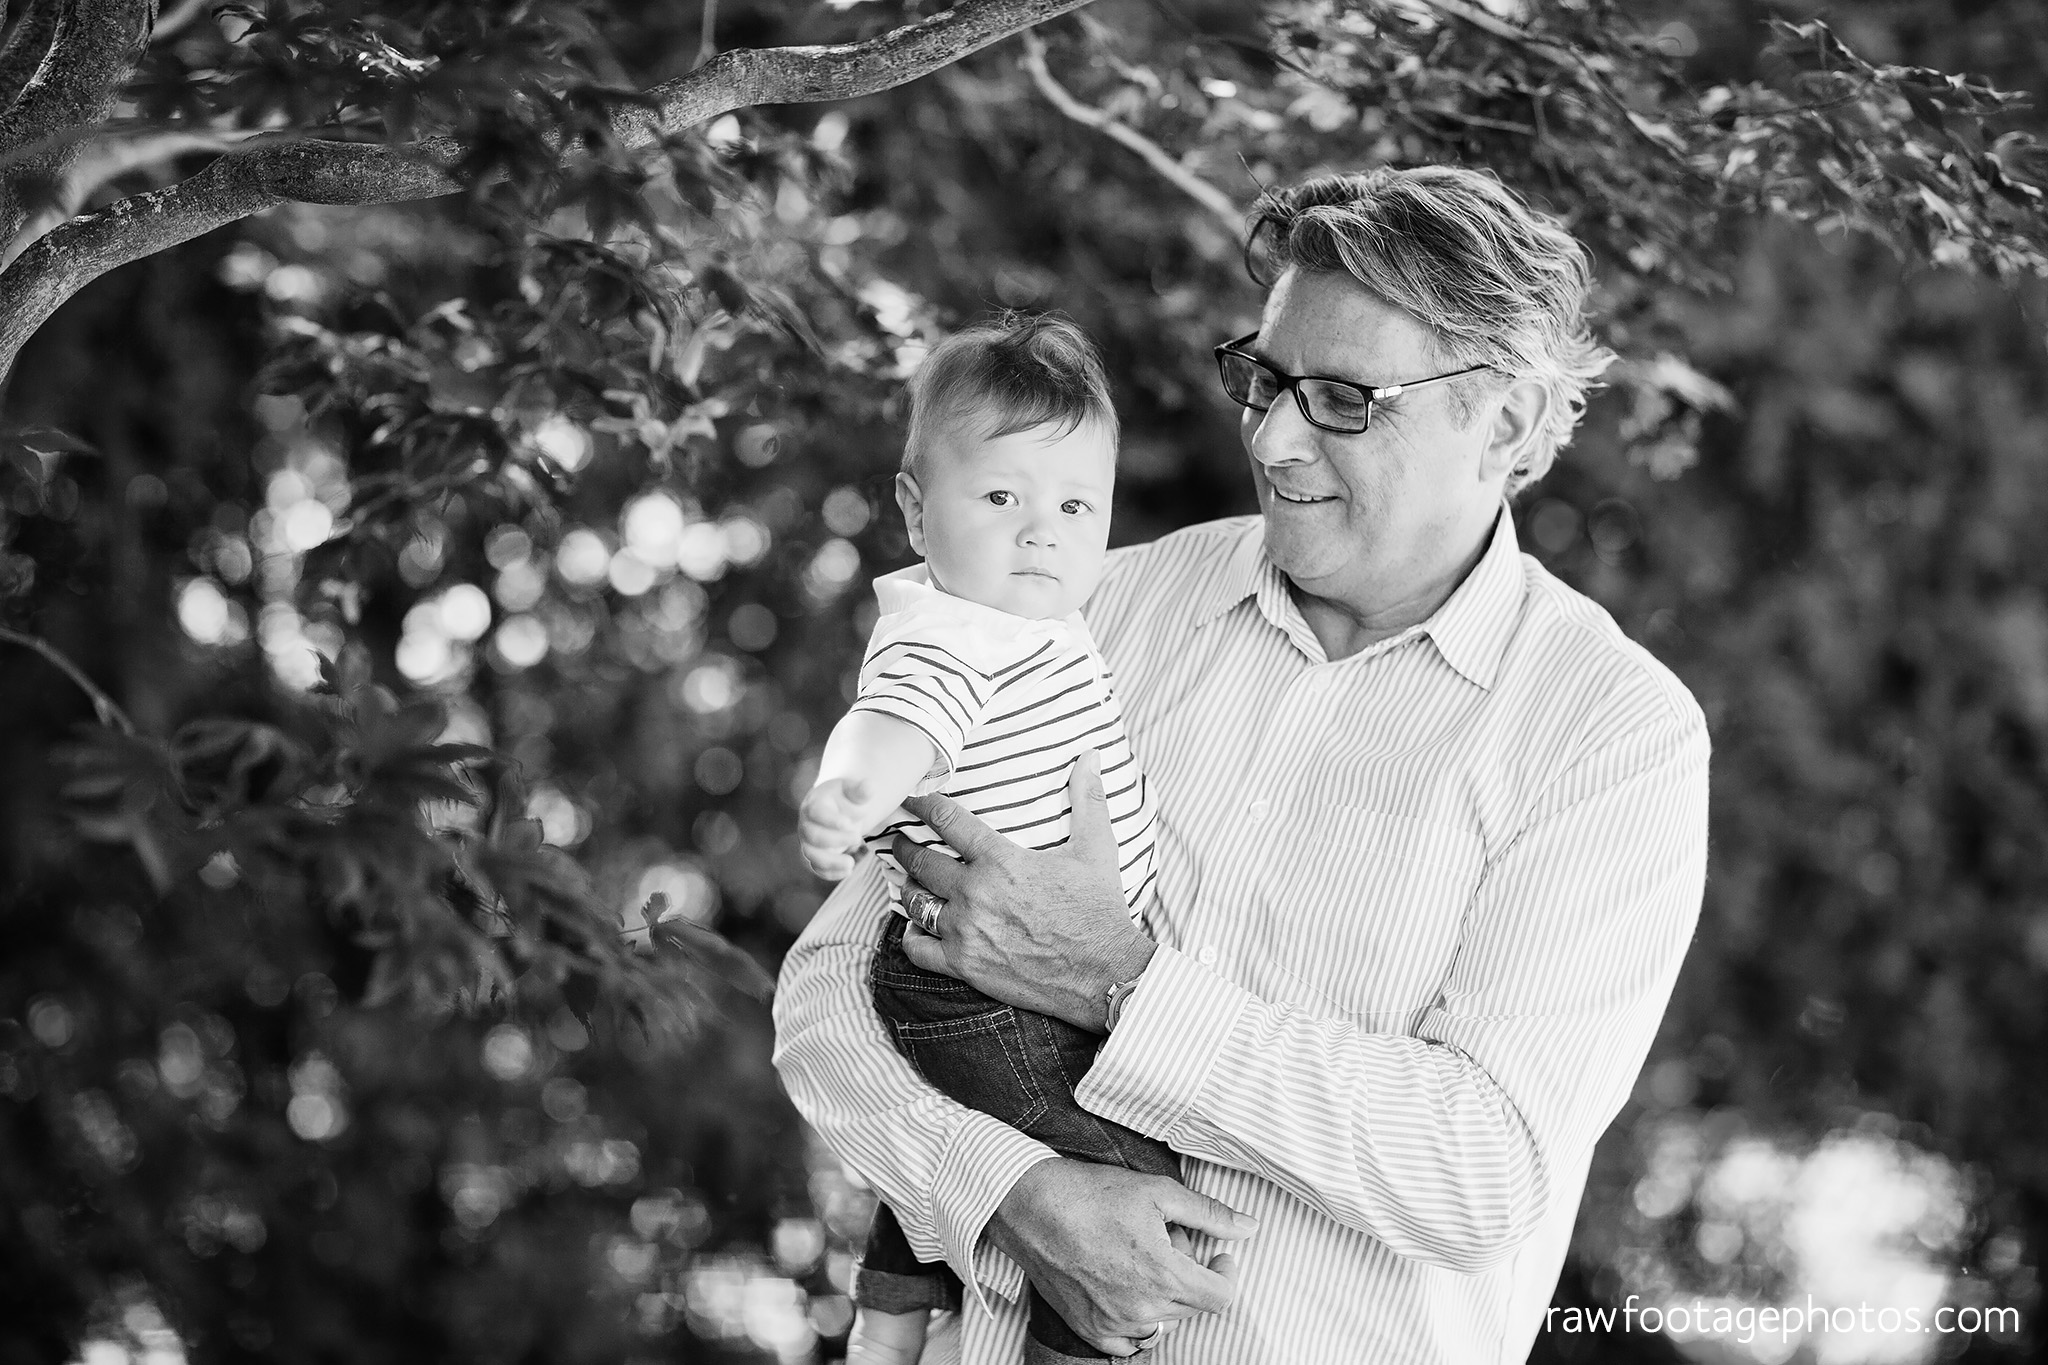 london_ontario_family_photographer-extended_family_session-raw_footage_photography007.jpg